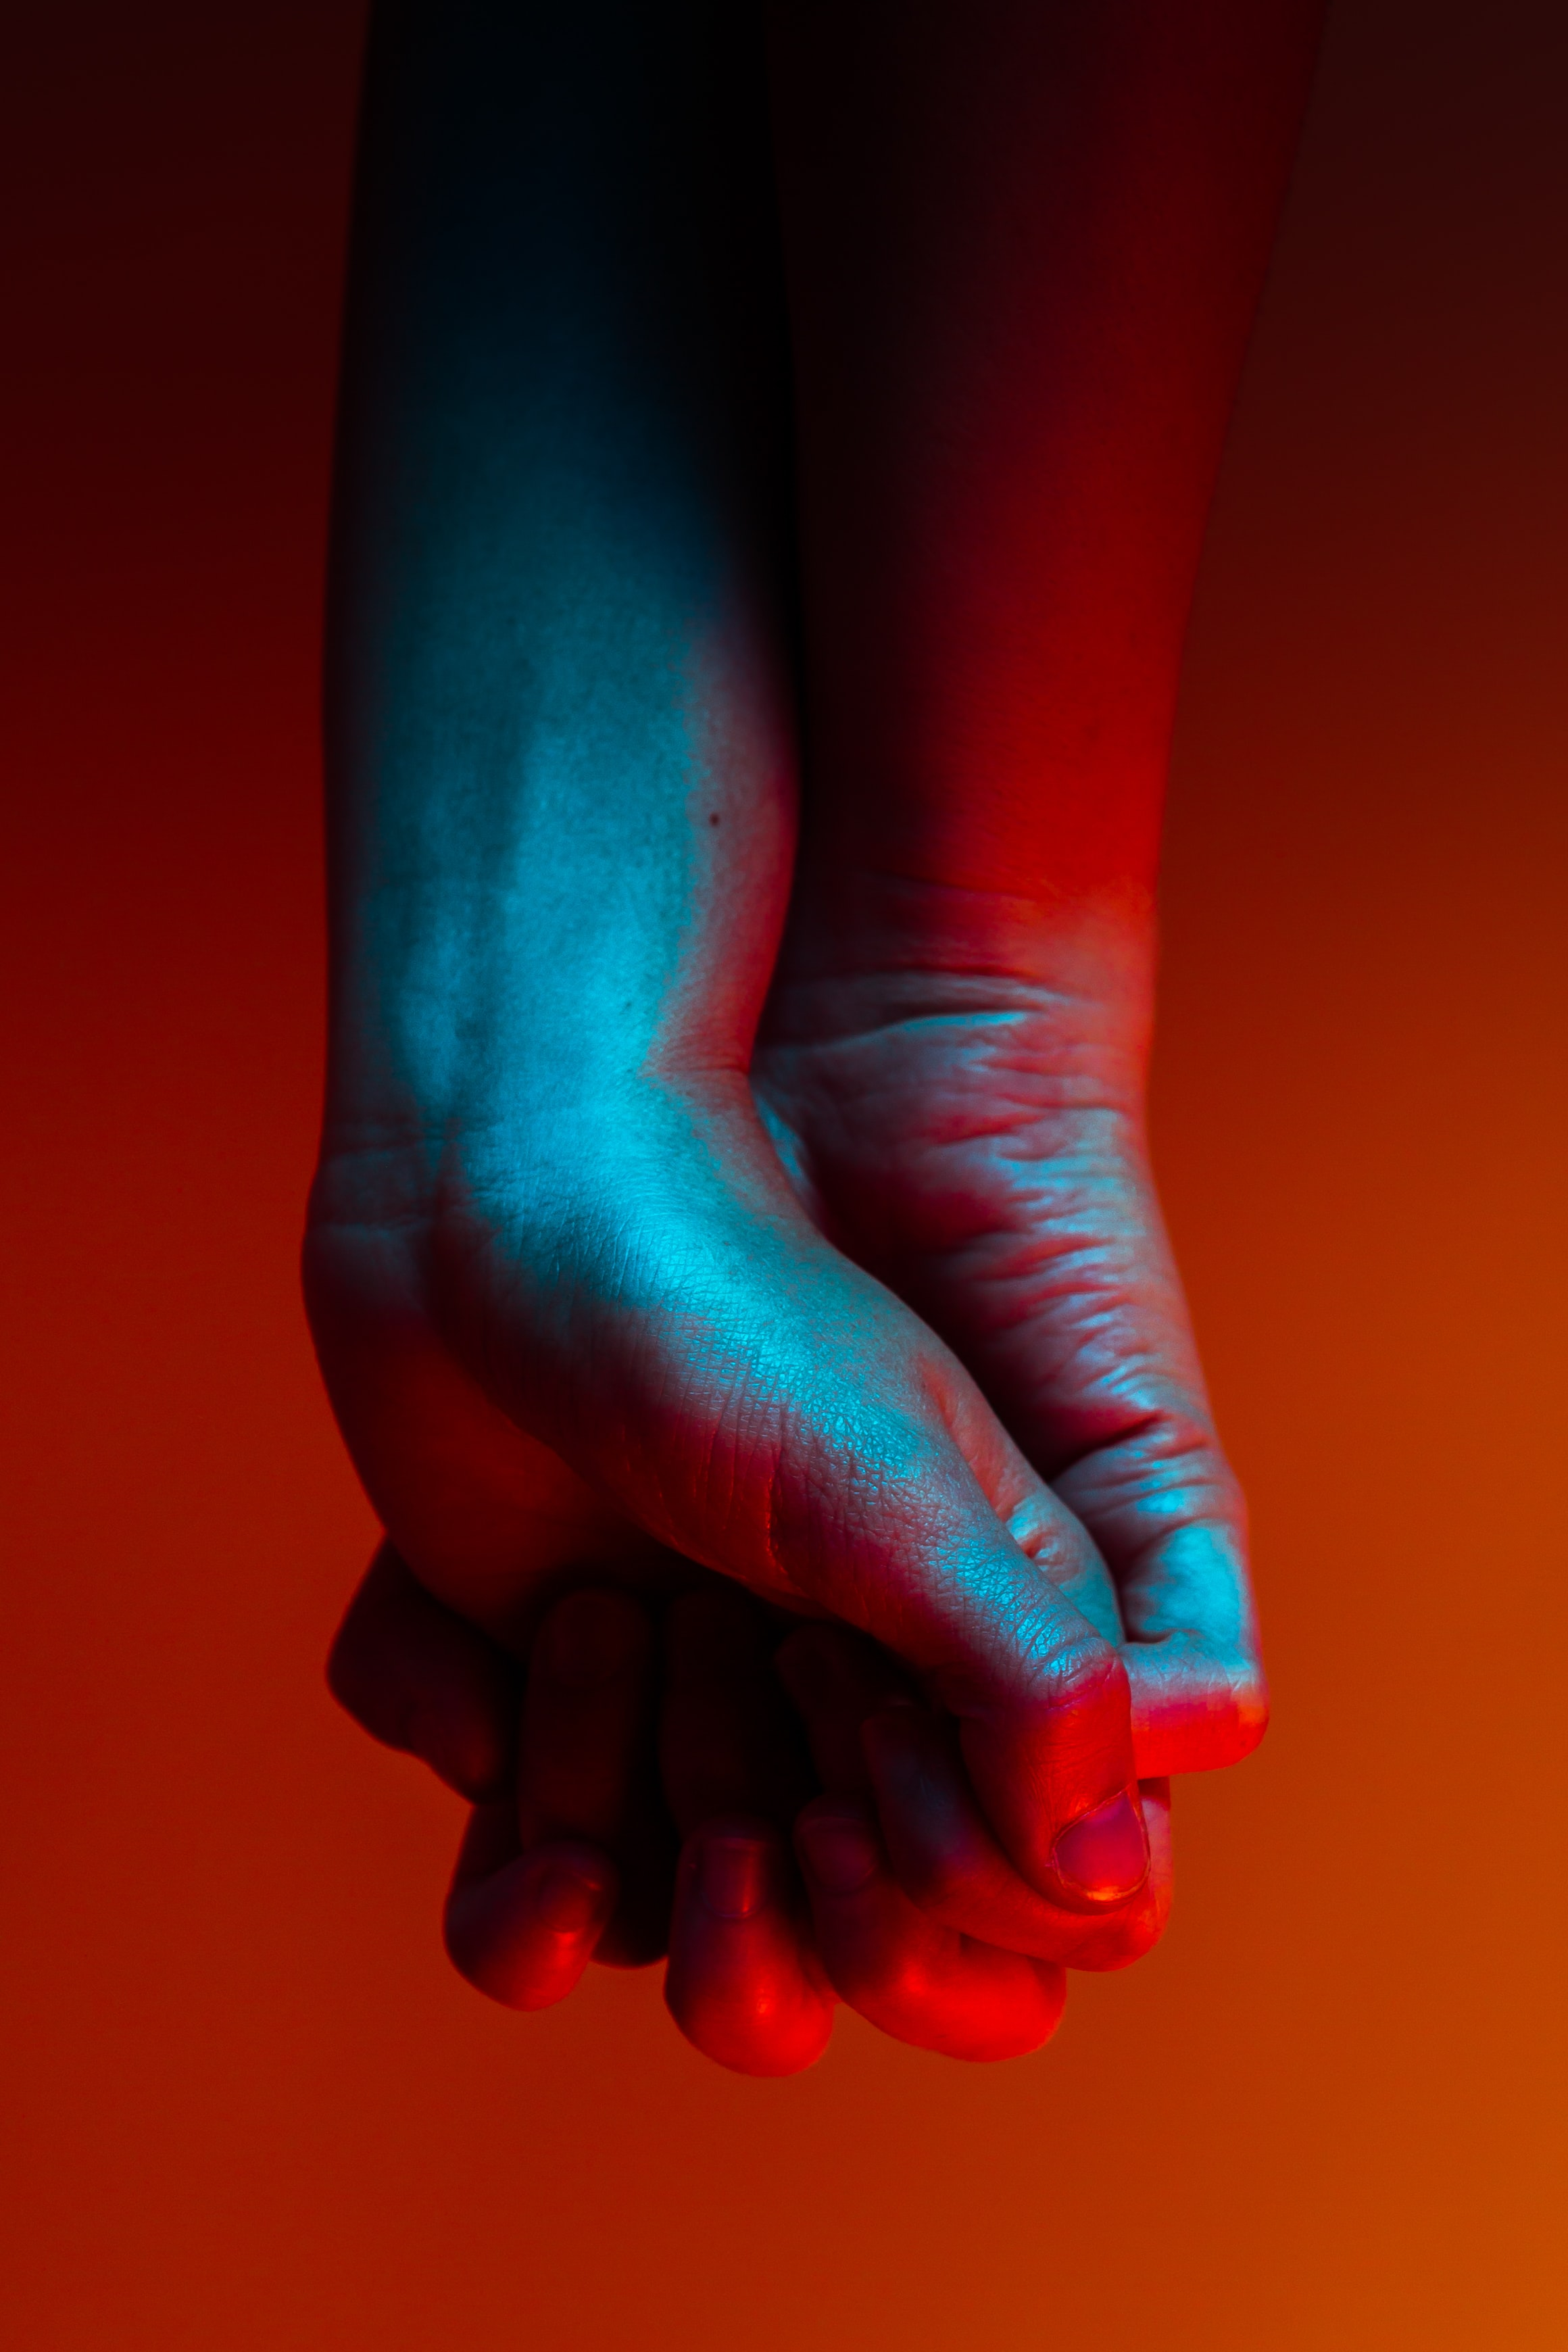 Moody shot of hands holding each other in romantic red light